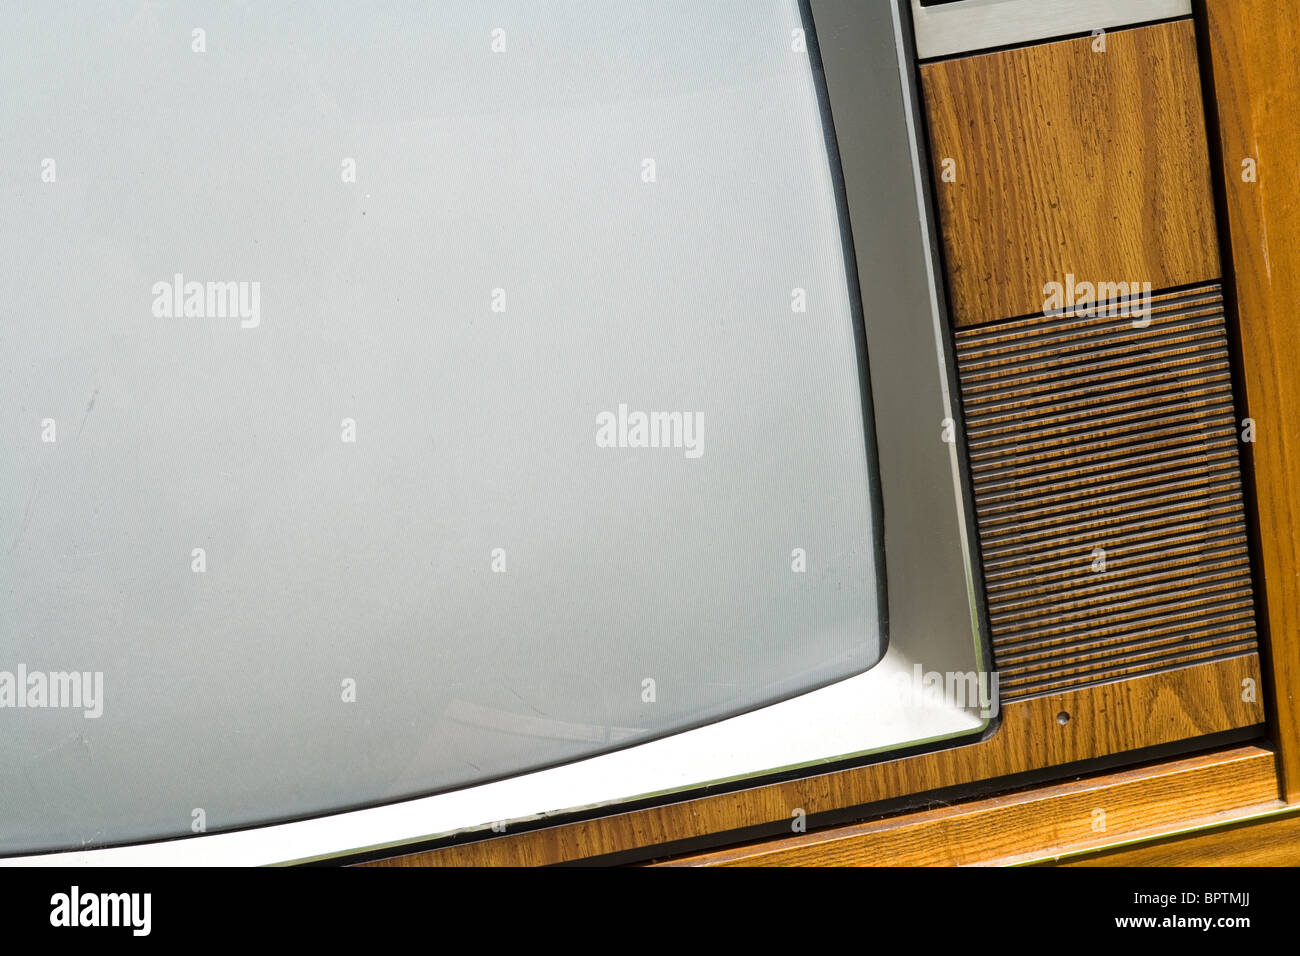 Old-fashioned Television close up - Stock Image